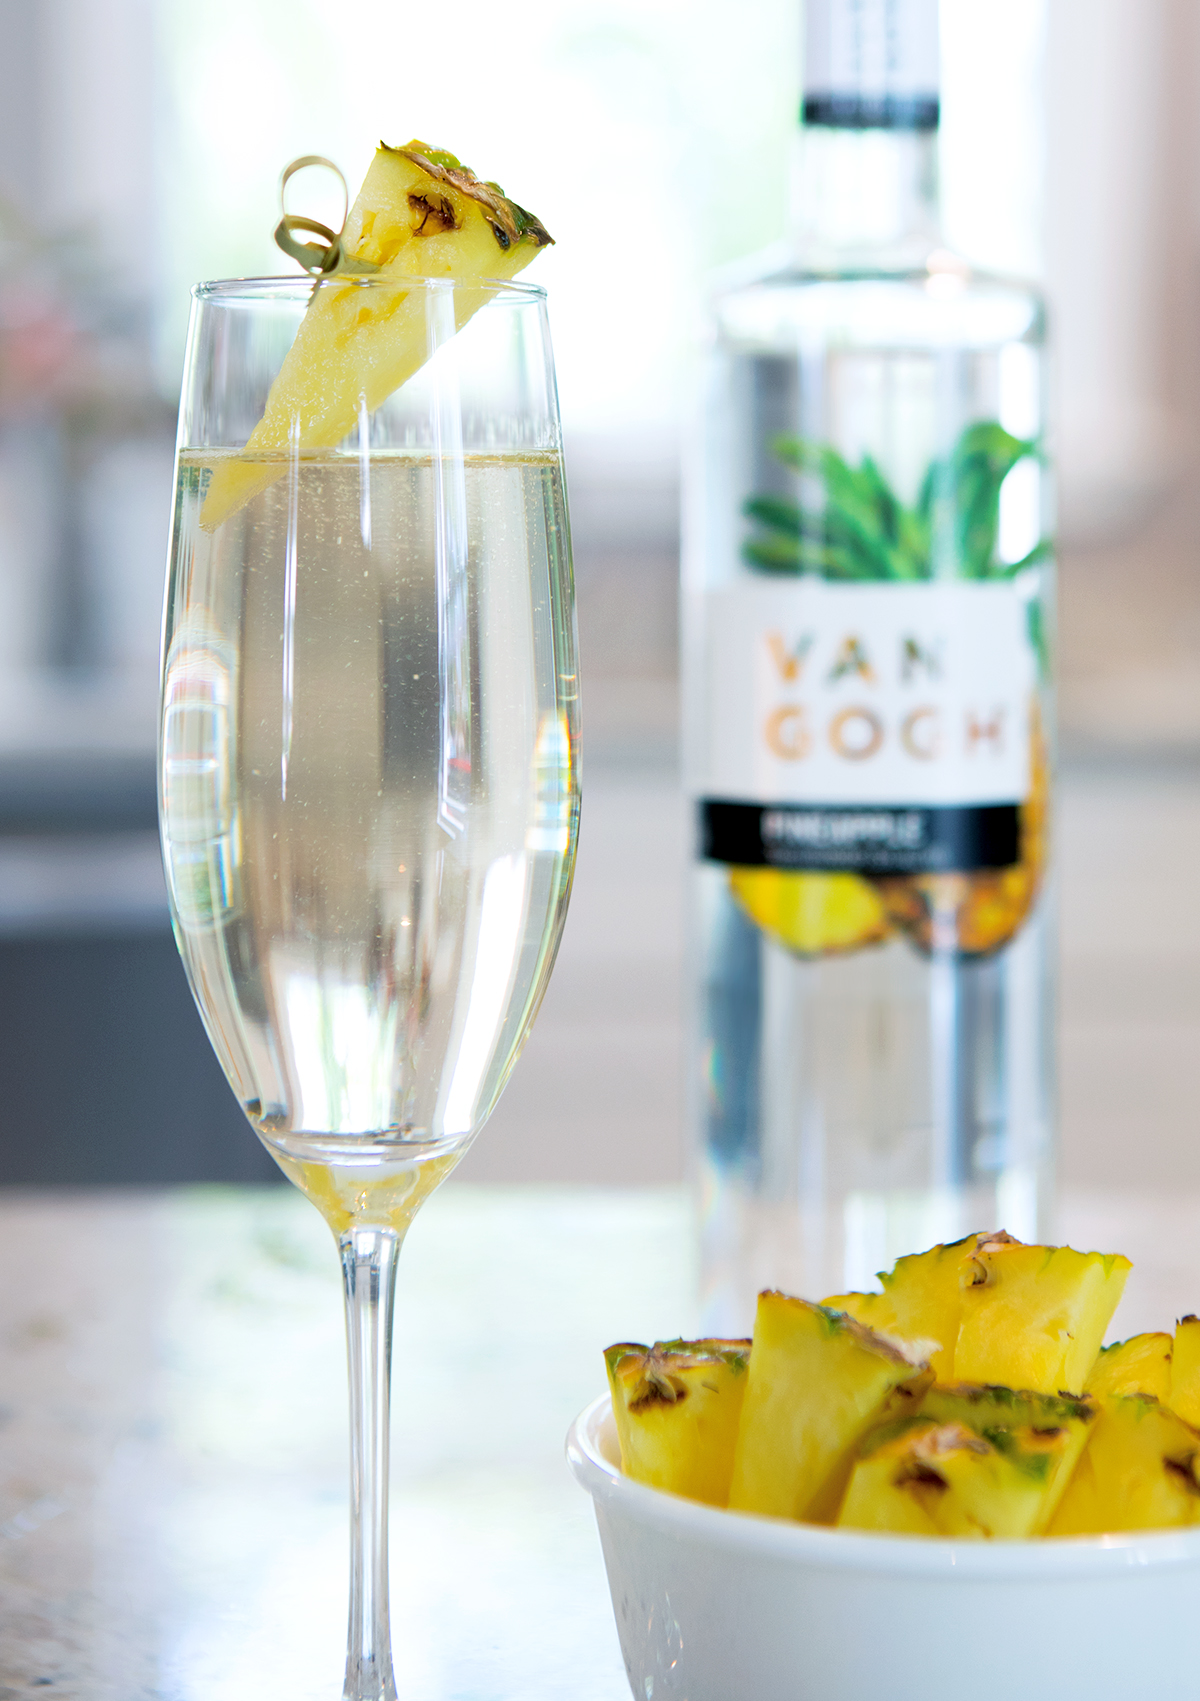 Add chilled pineapple vodka to a flute and top with chilled sparkling wine. Garnish with a. pineapple slice.